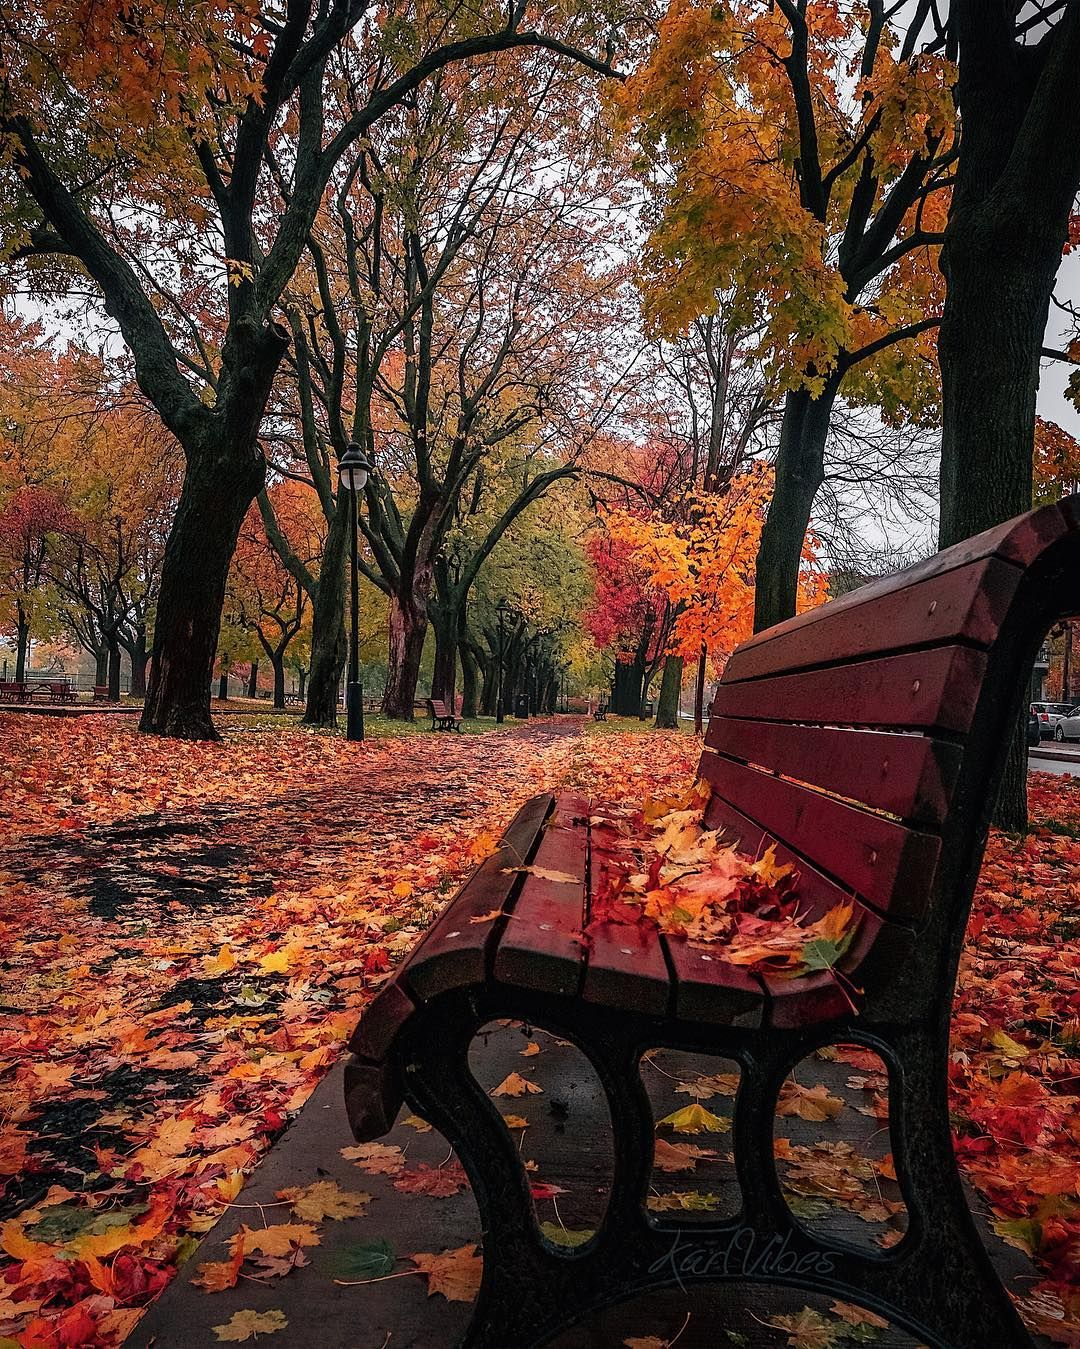 Day Of Autumn Autumn Scenery Autumn Nature Fall Pictures